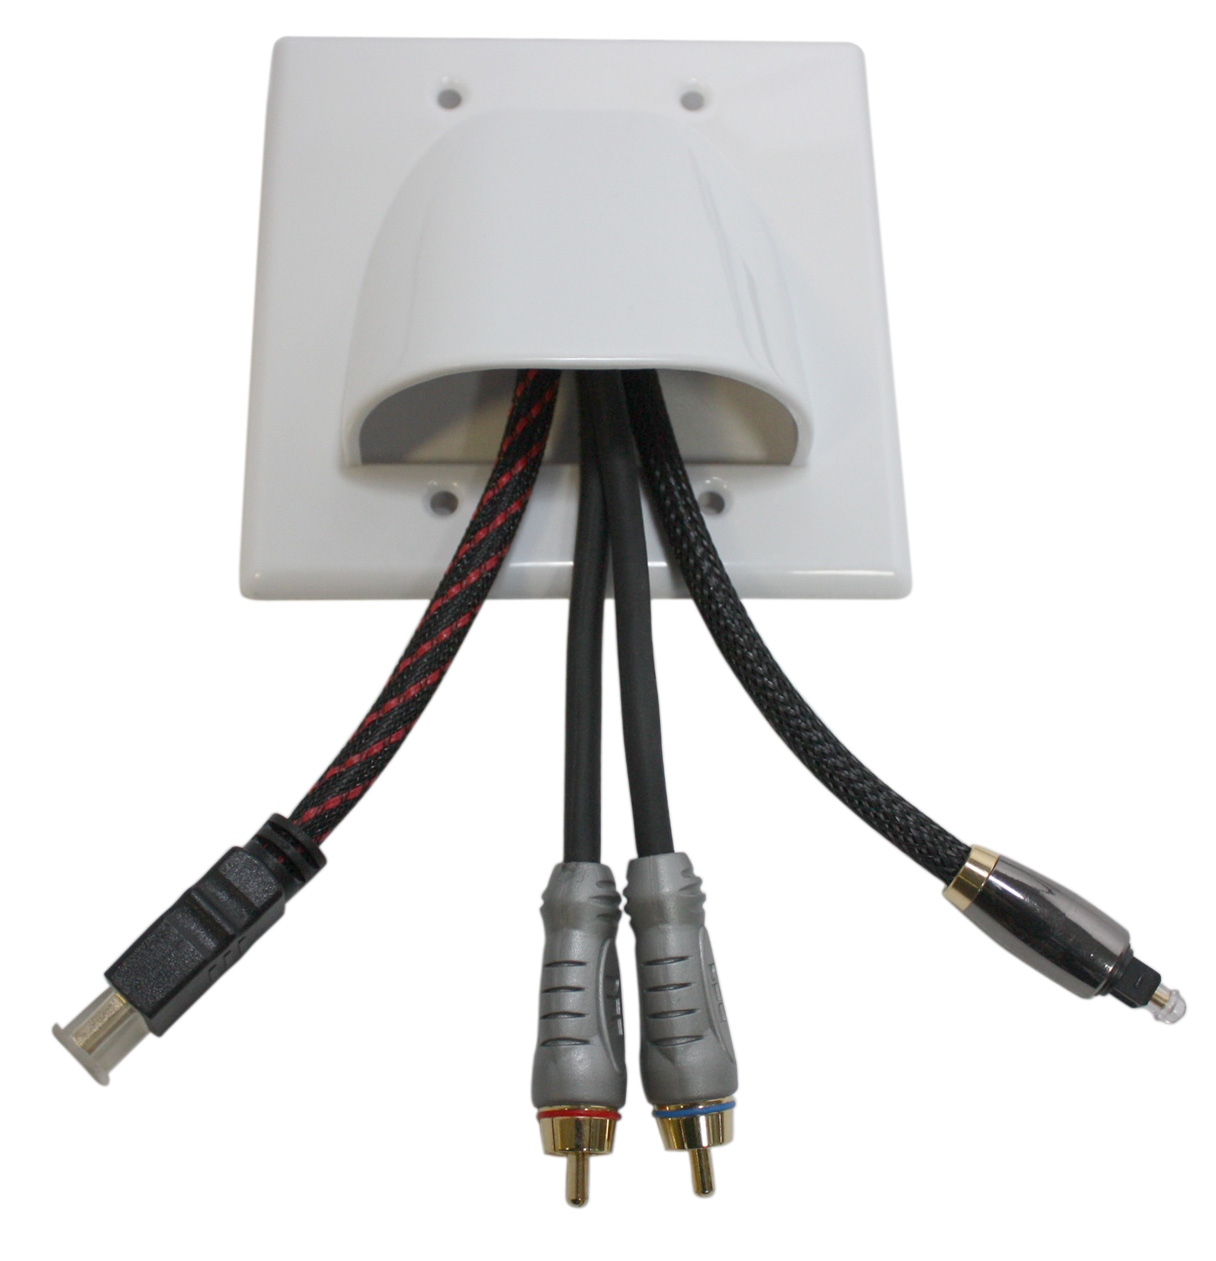 Tv Wiring Wall Plates Buy Dual Gang Low Voltage Cable Management Plate Online For 698cad At